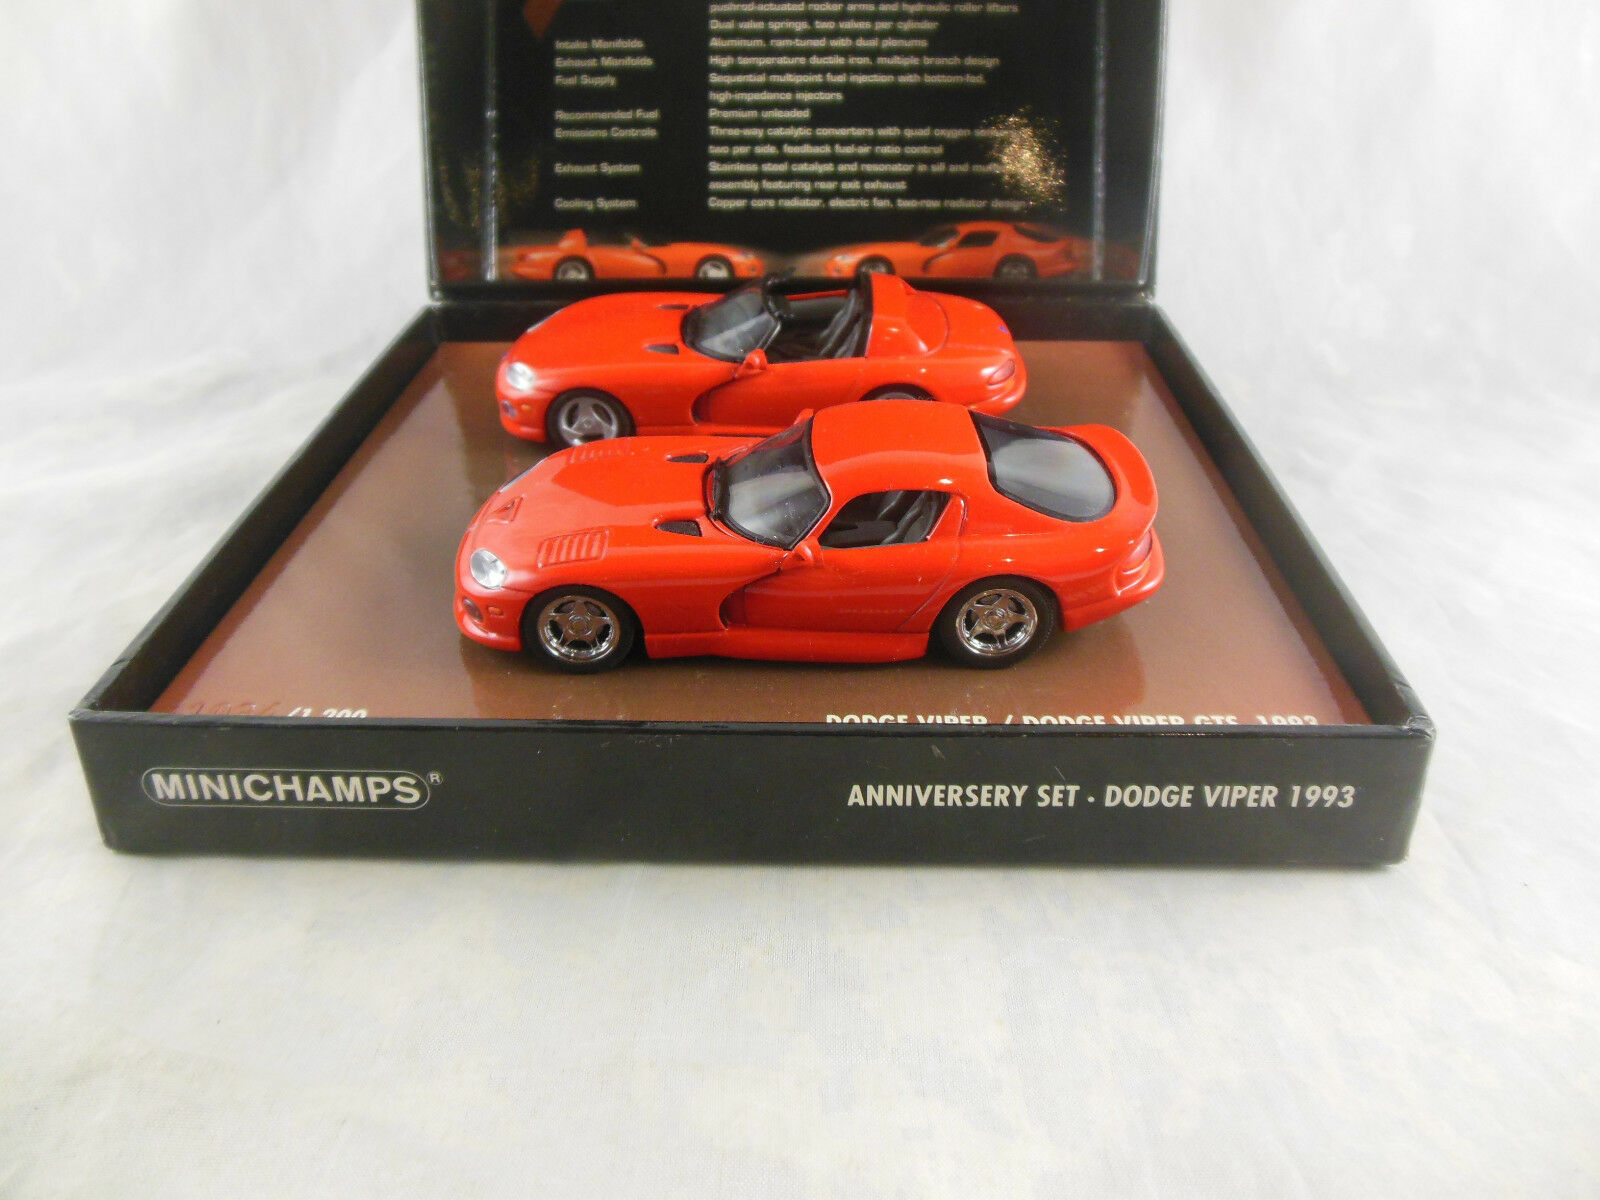 Rare Minichamps 436 144000 Dodge Viper 1993 - 2003 10th Anniversary Set in Red